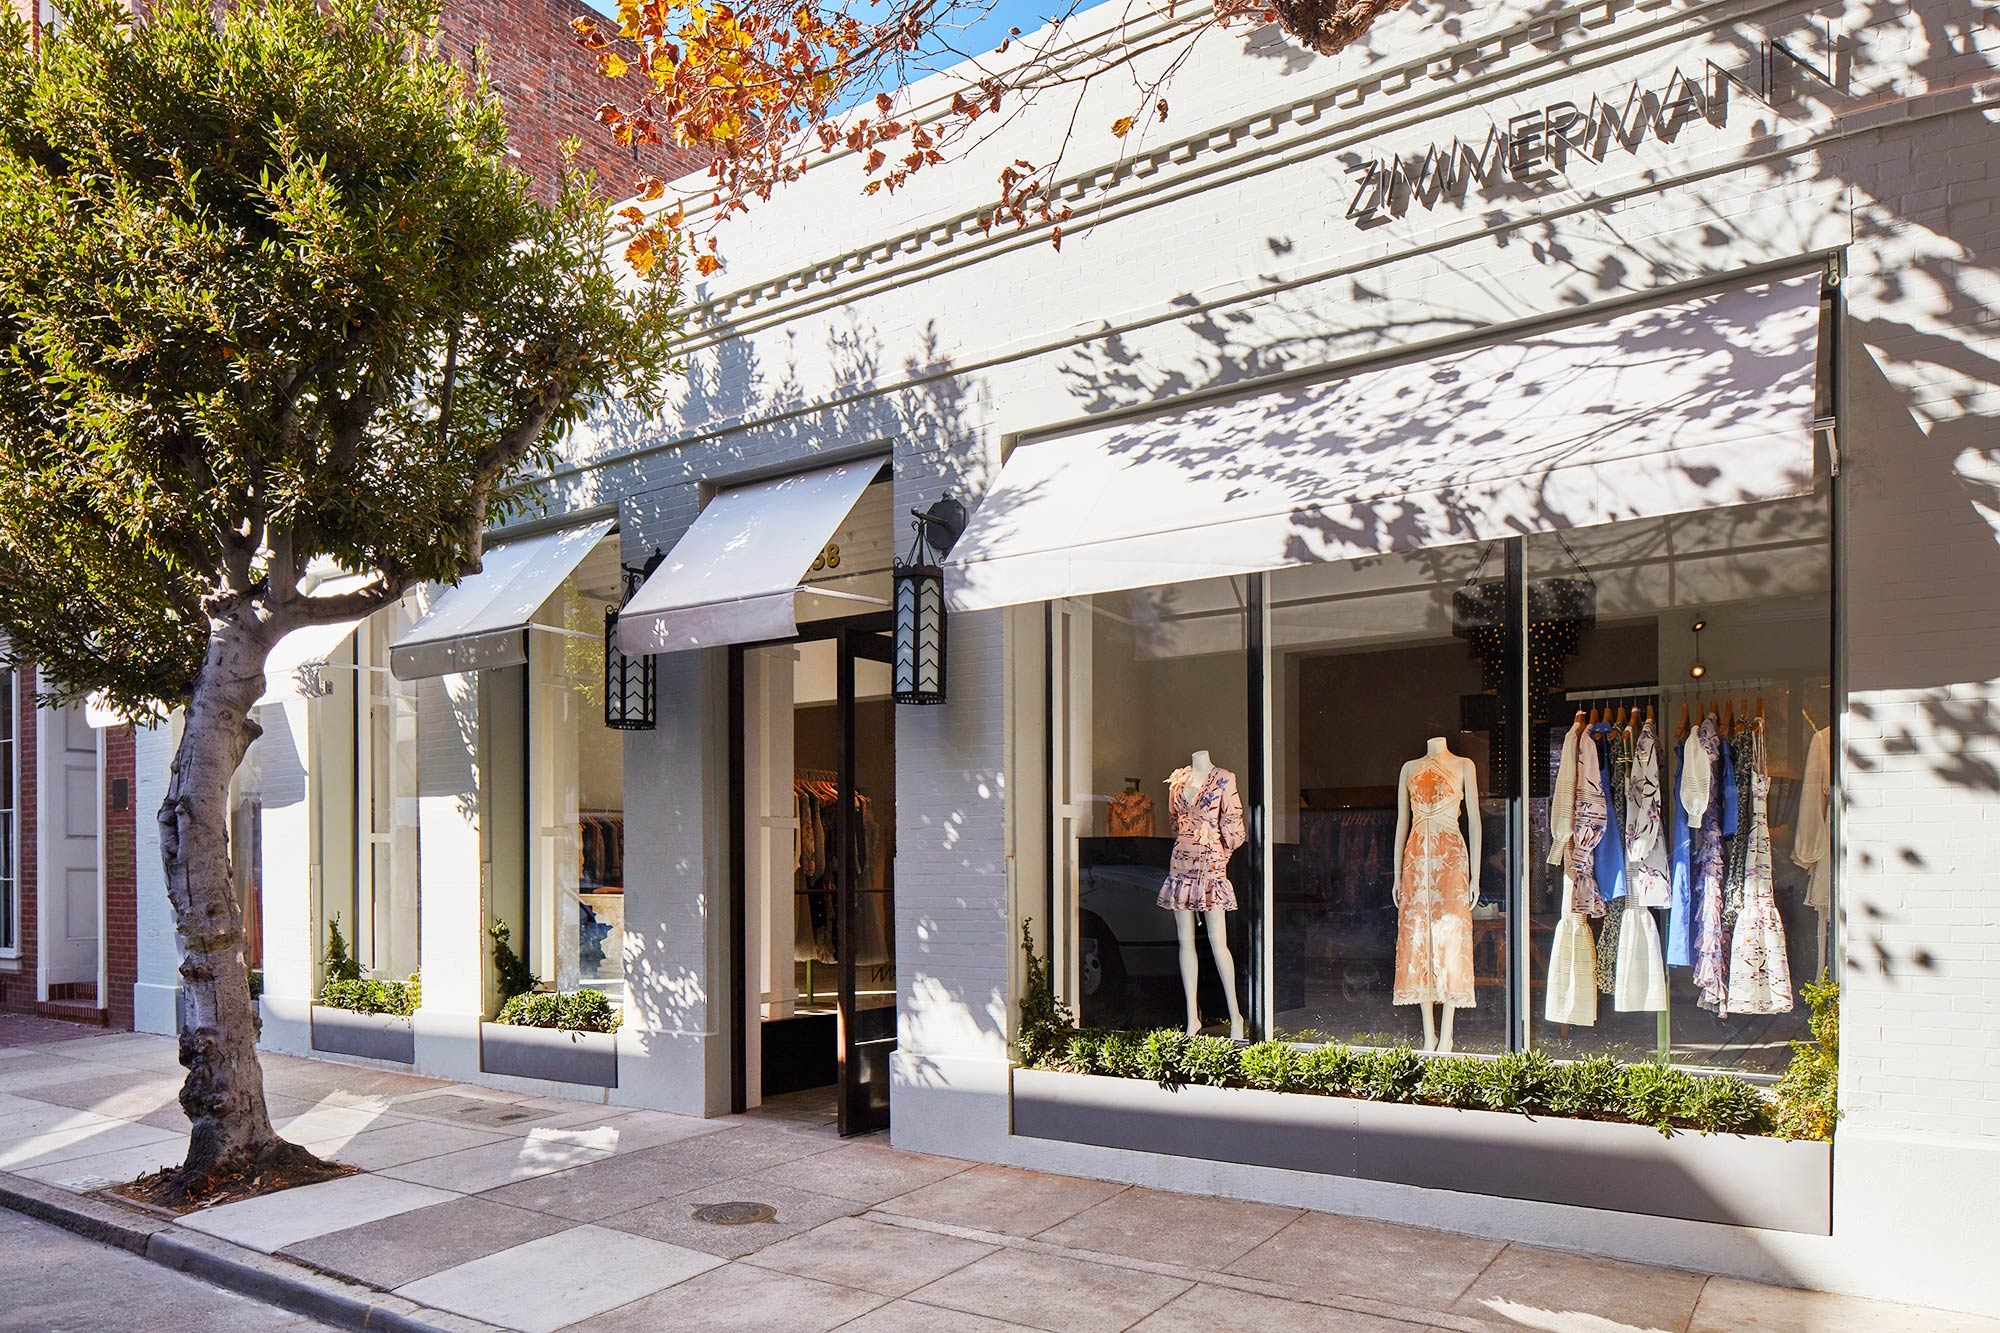 Zimmermann San Francicso store front